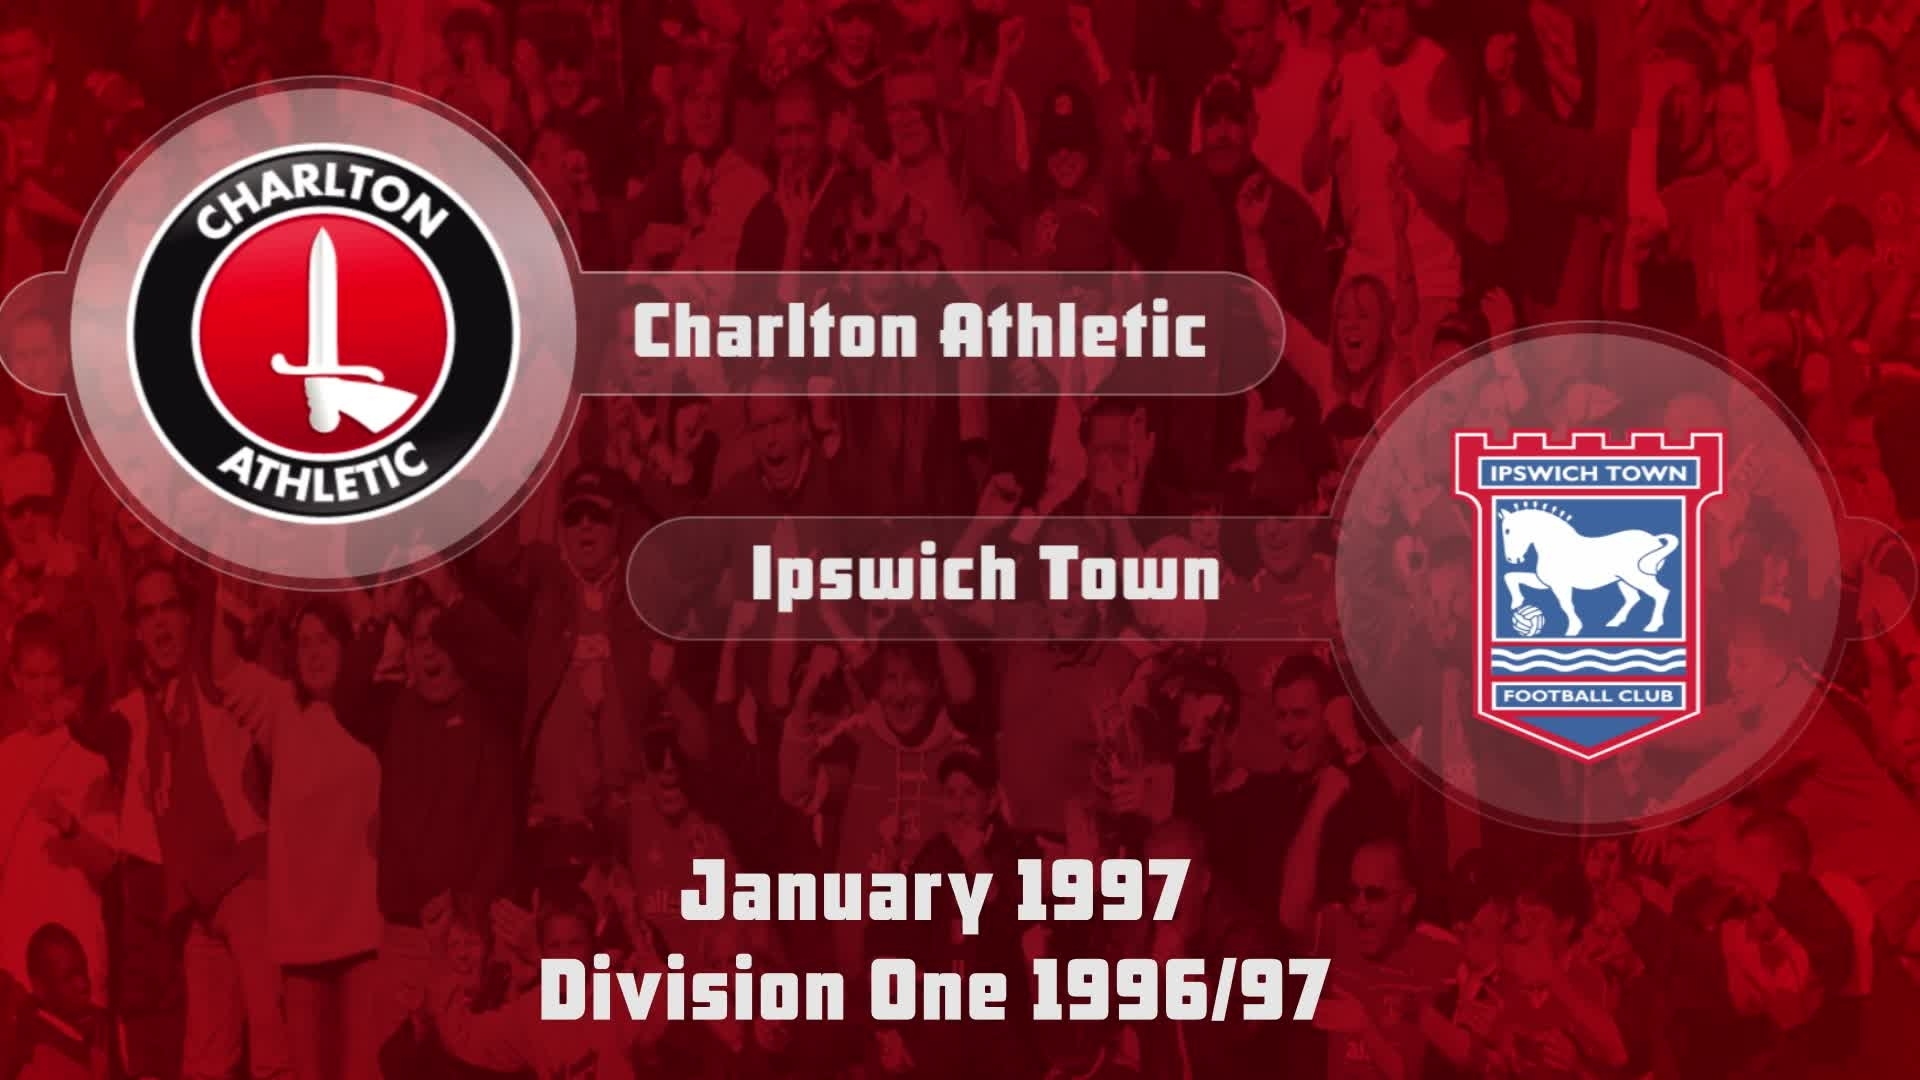 30 HIGHLIGHTS | Charlton 1 Ipswich 1 (Jan 1997)